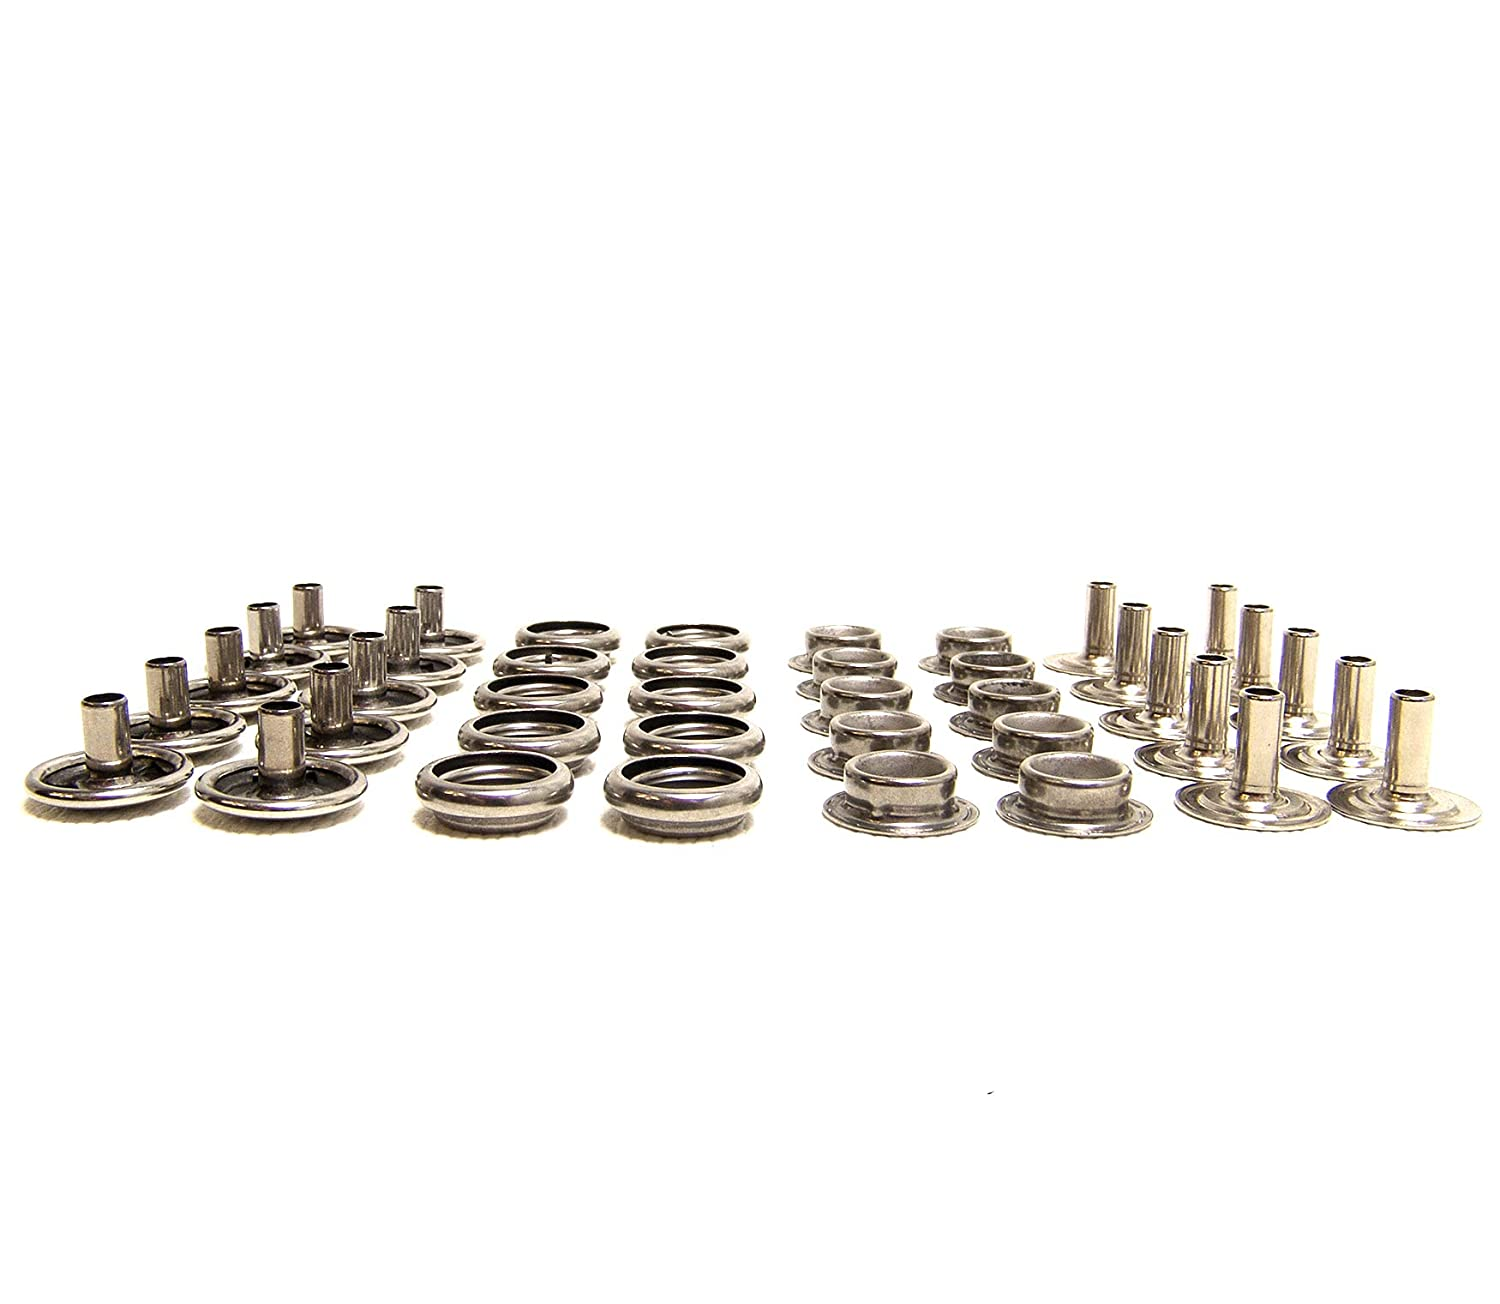 80 Pcs.Total Shipped from The USA! 20 of Each Piece Stainless Steel Snaps